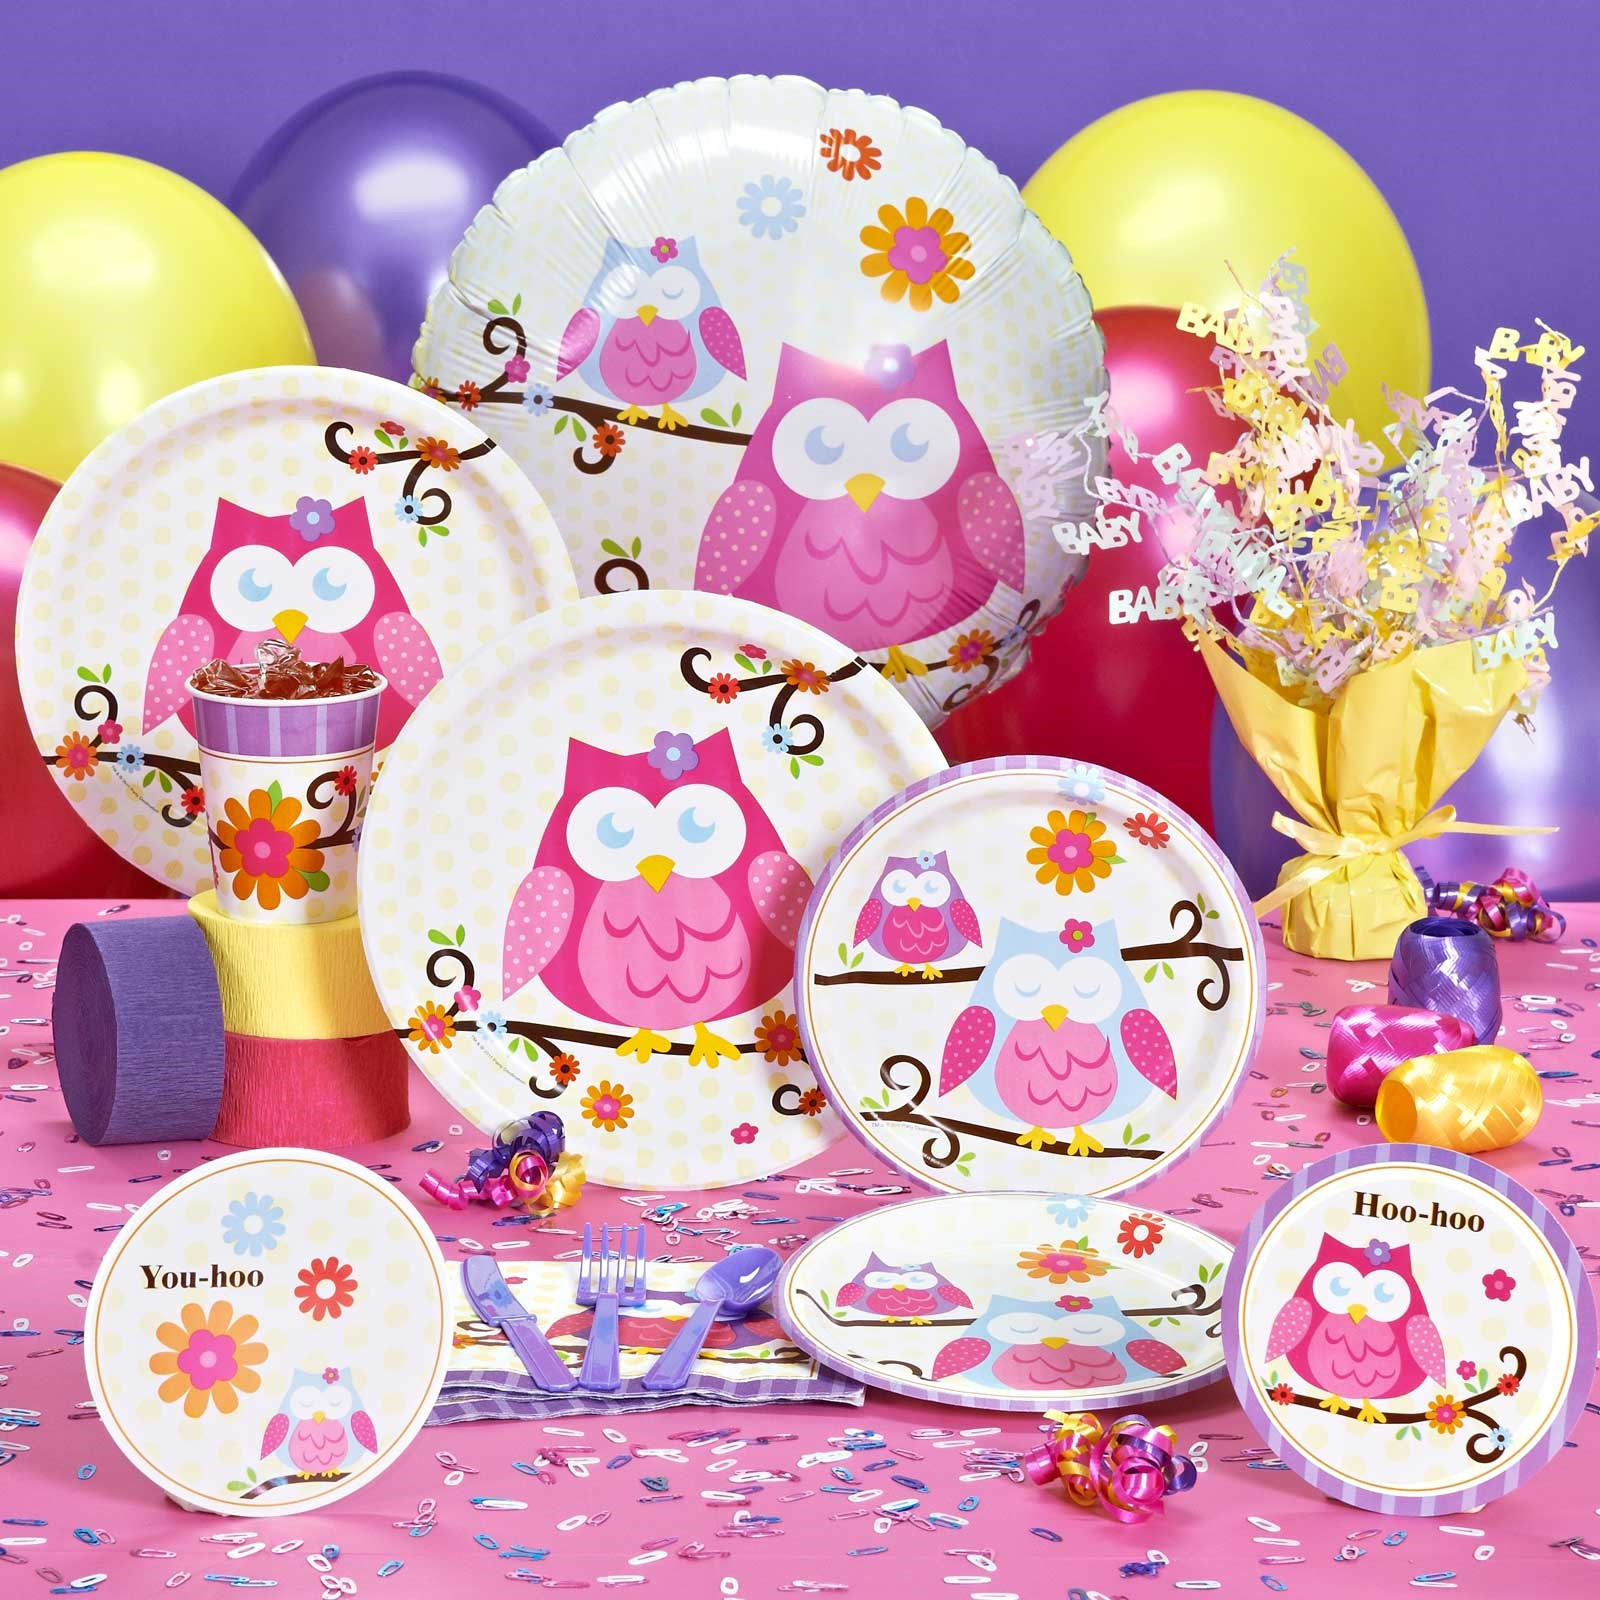 Party City Girl Baby Shower  Party Supplies For Baby Shower